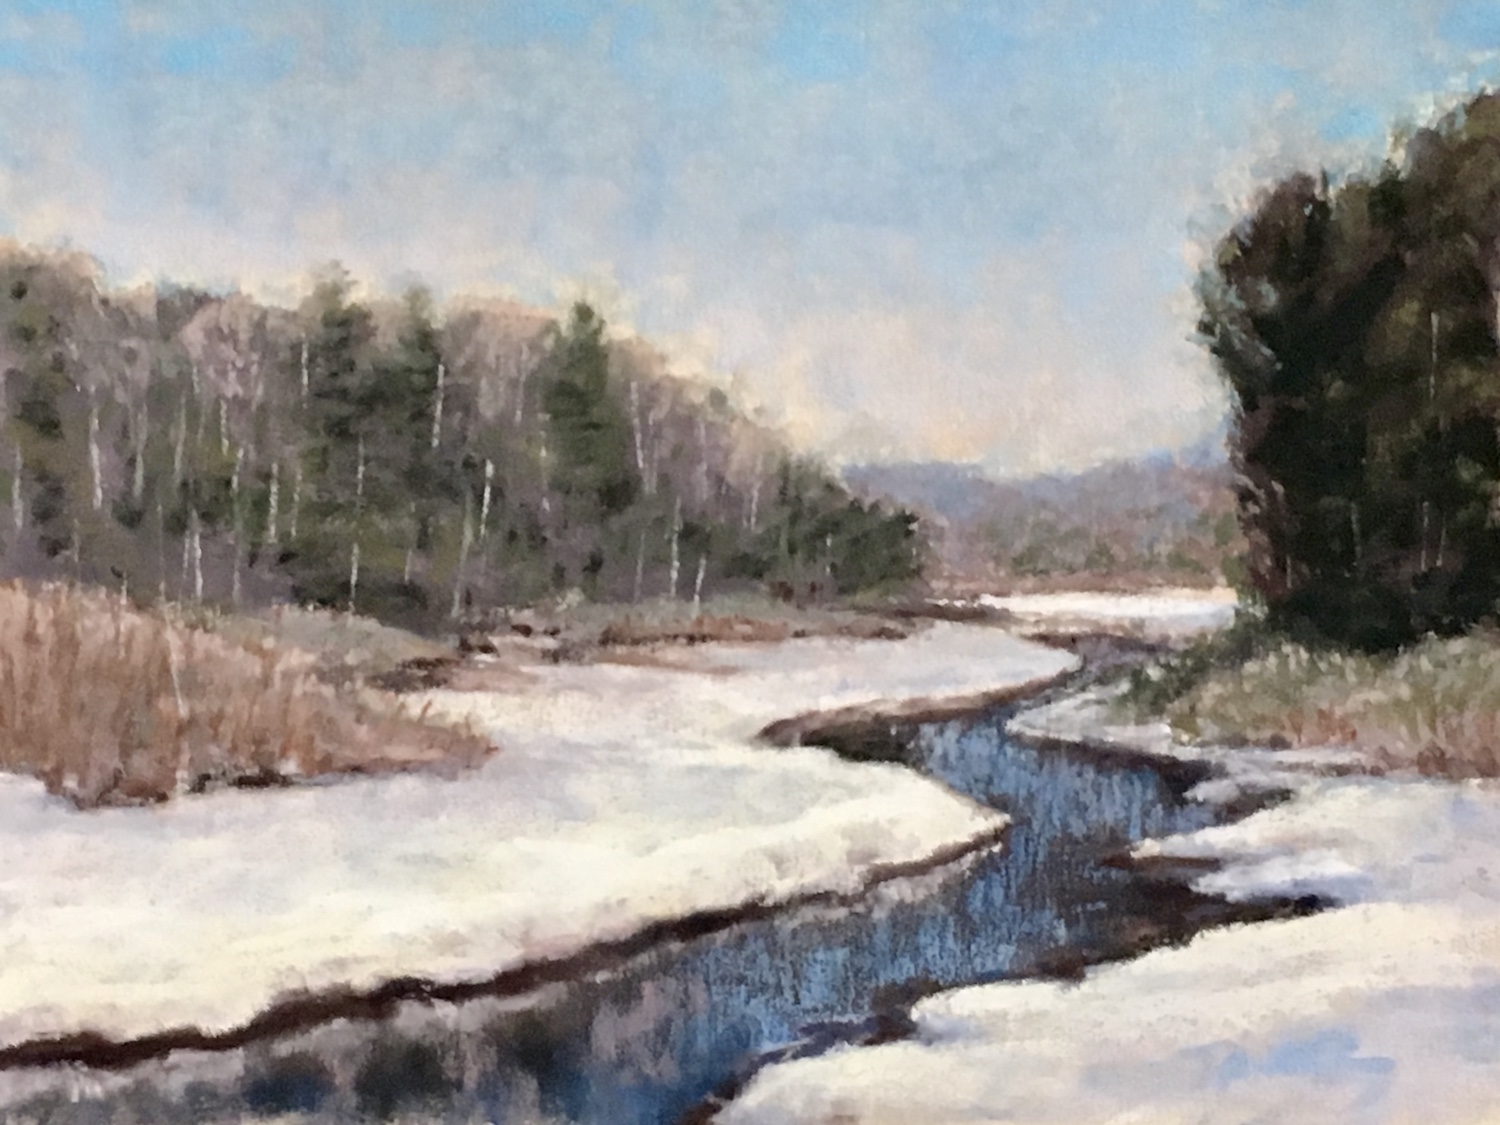 pastel of river with snow on the river banks and trees